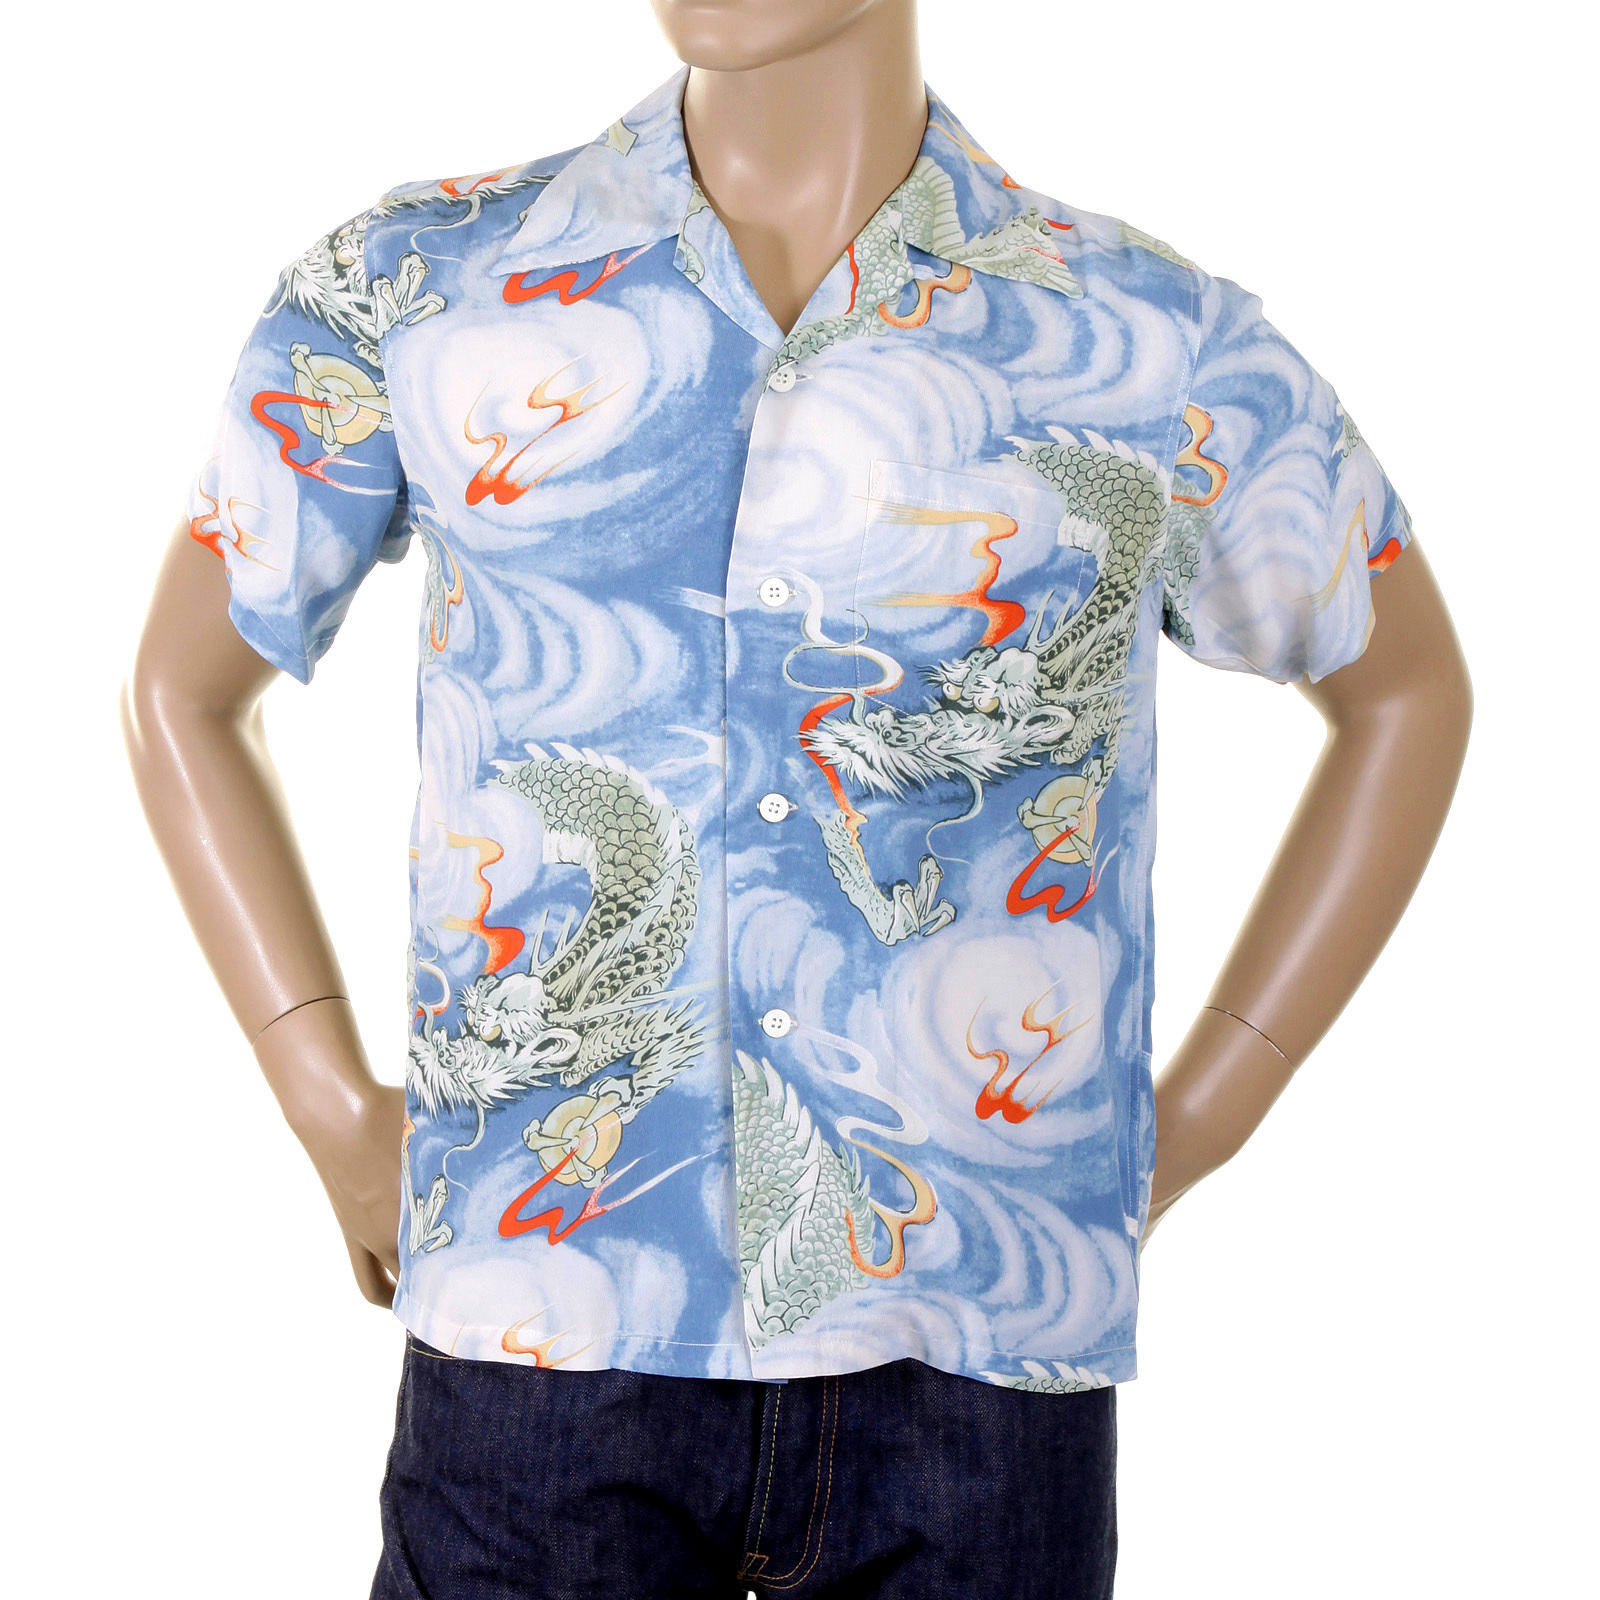 Classy and edgy light blue hawaiian shirt by sun surf for Men s regular fit shirts